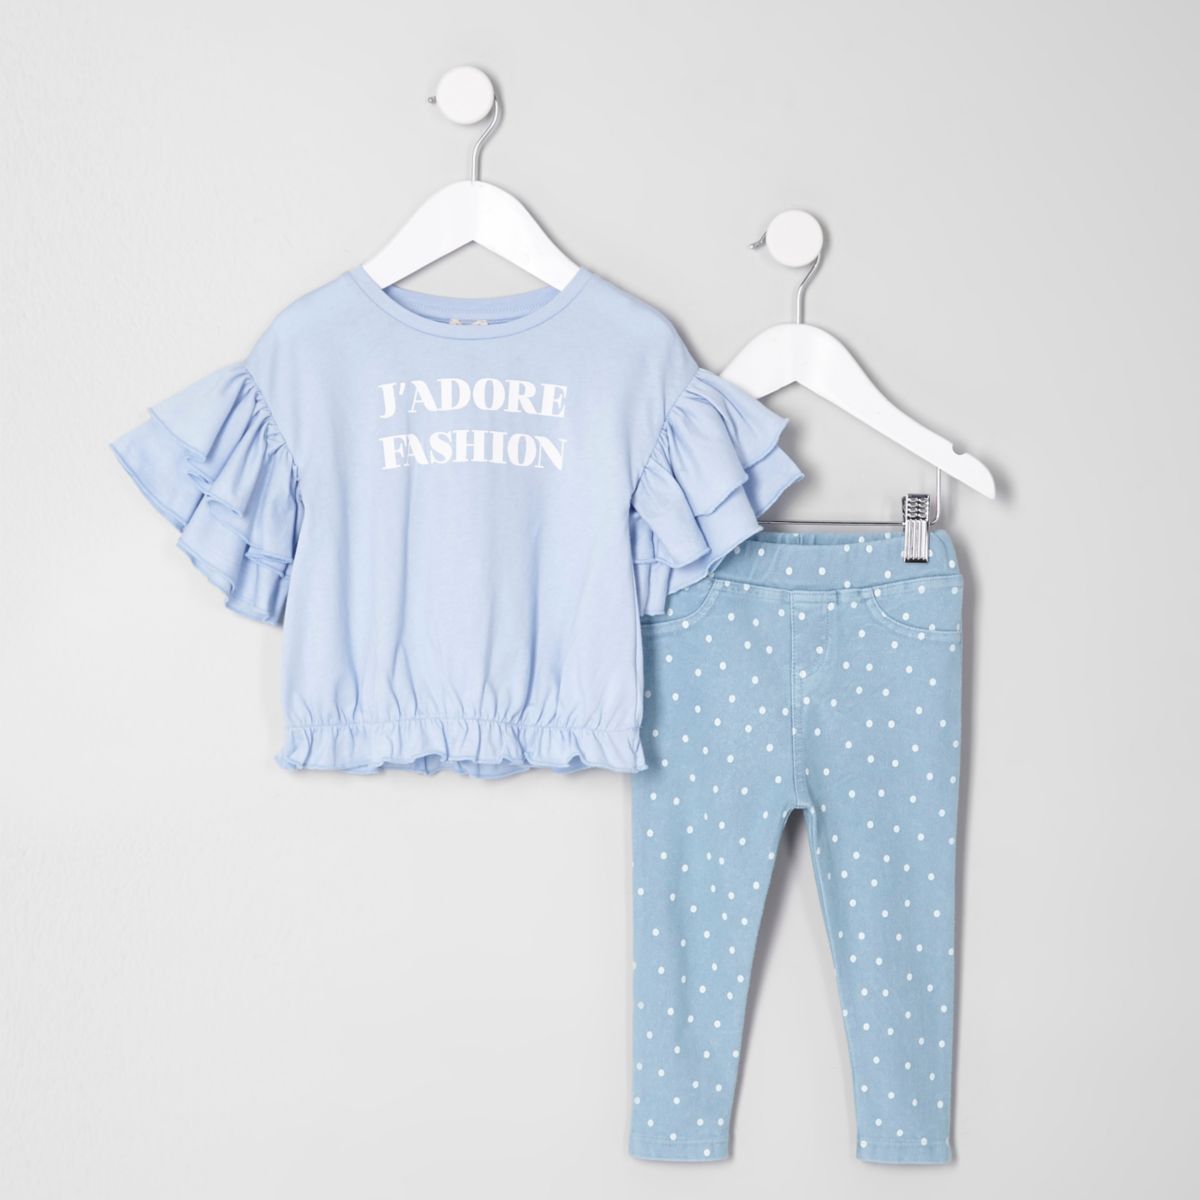 Mini girls blue top and spot leggings outfit